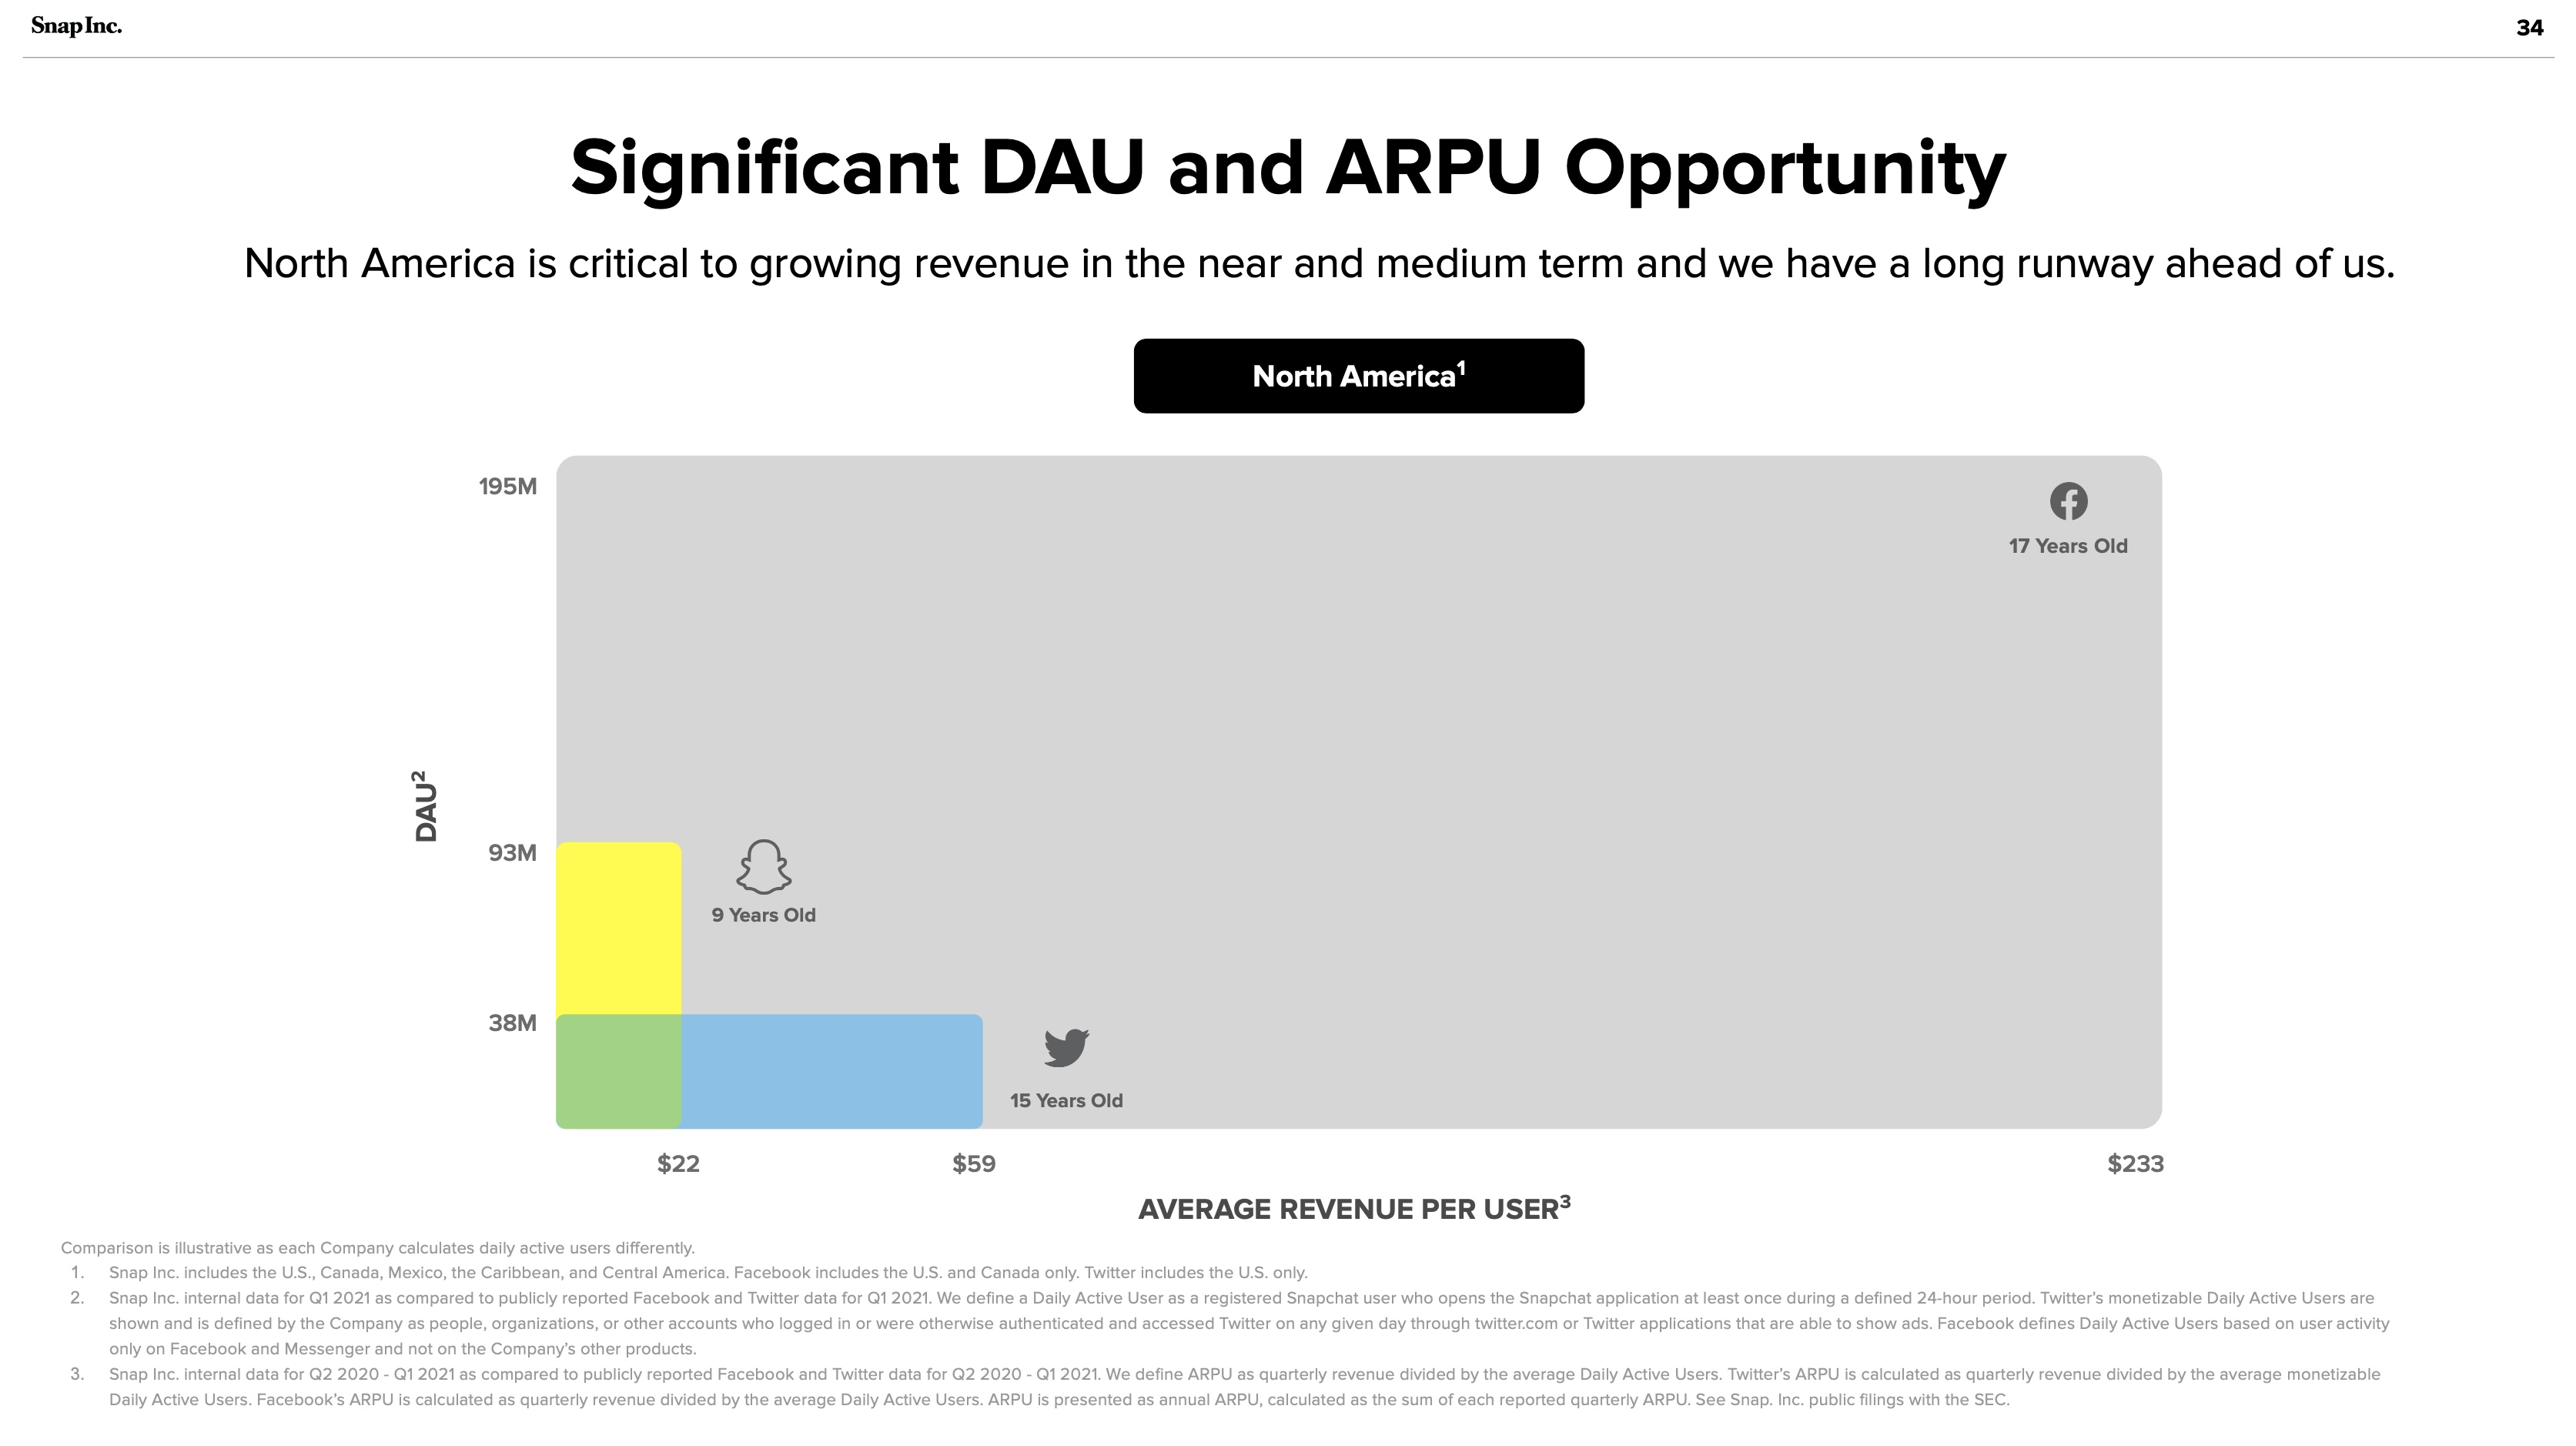 Snapchat July 2021 investor presentation: Significant DAU and ARPU Opportunity